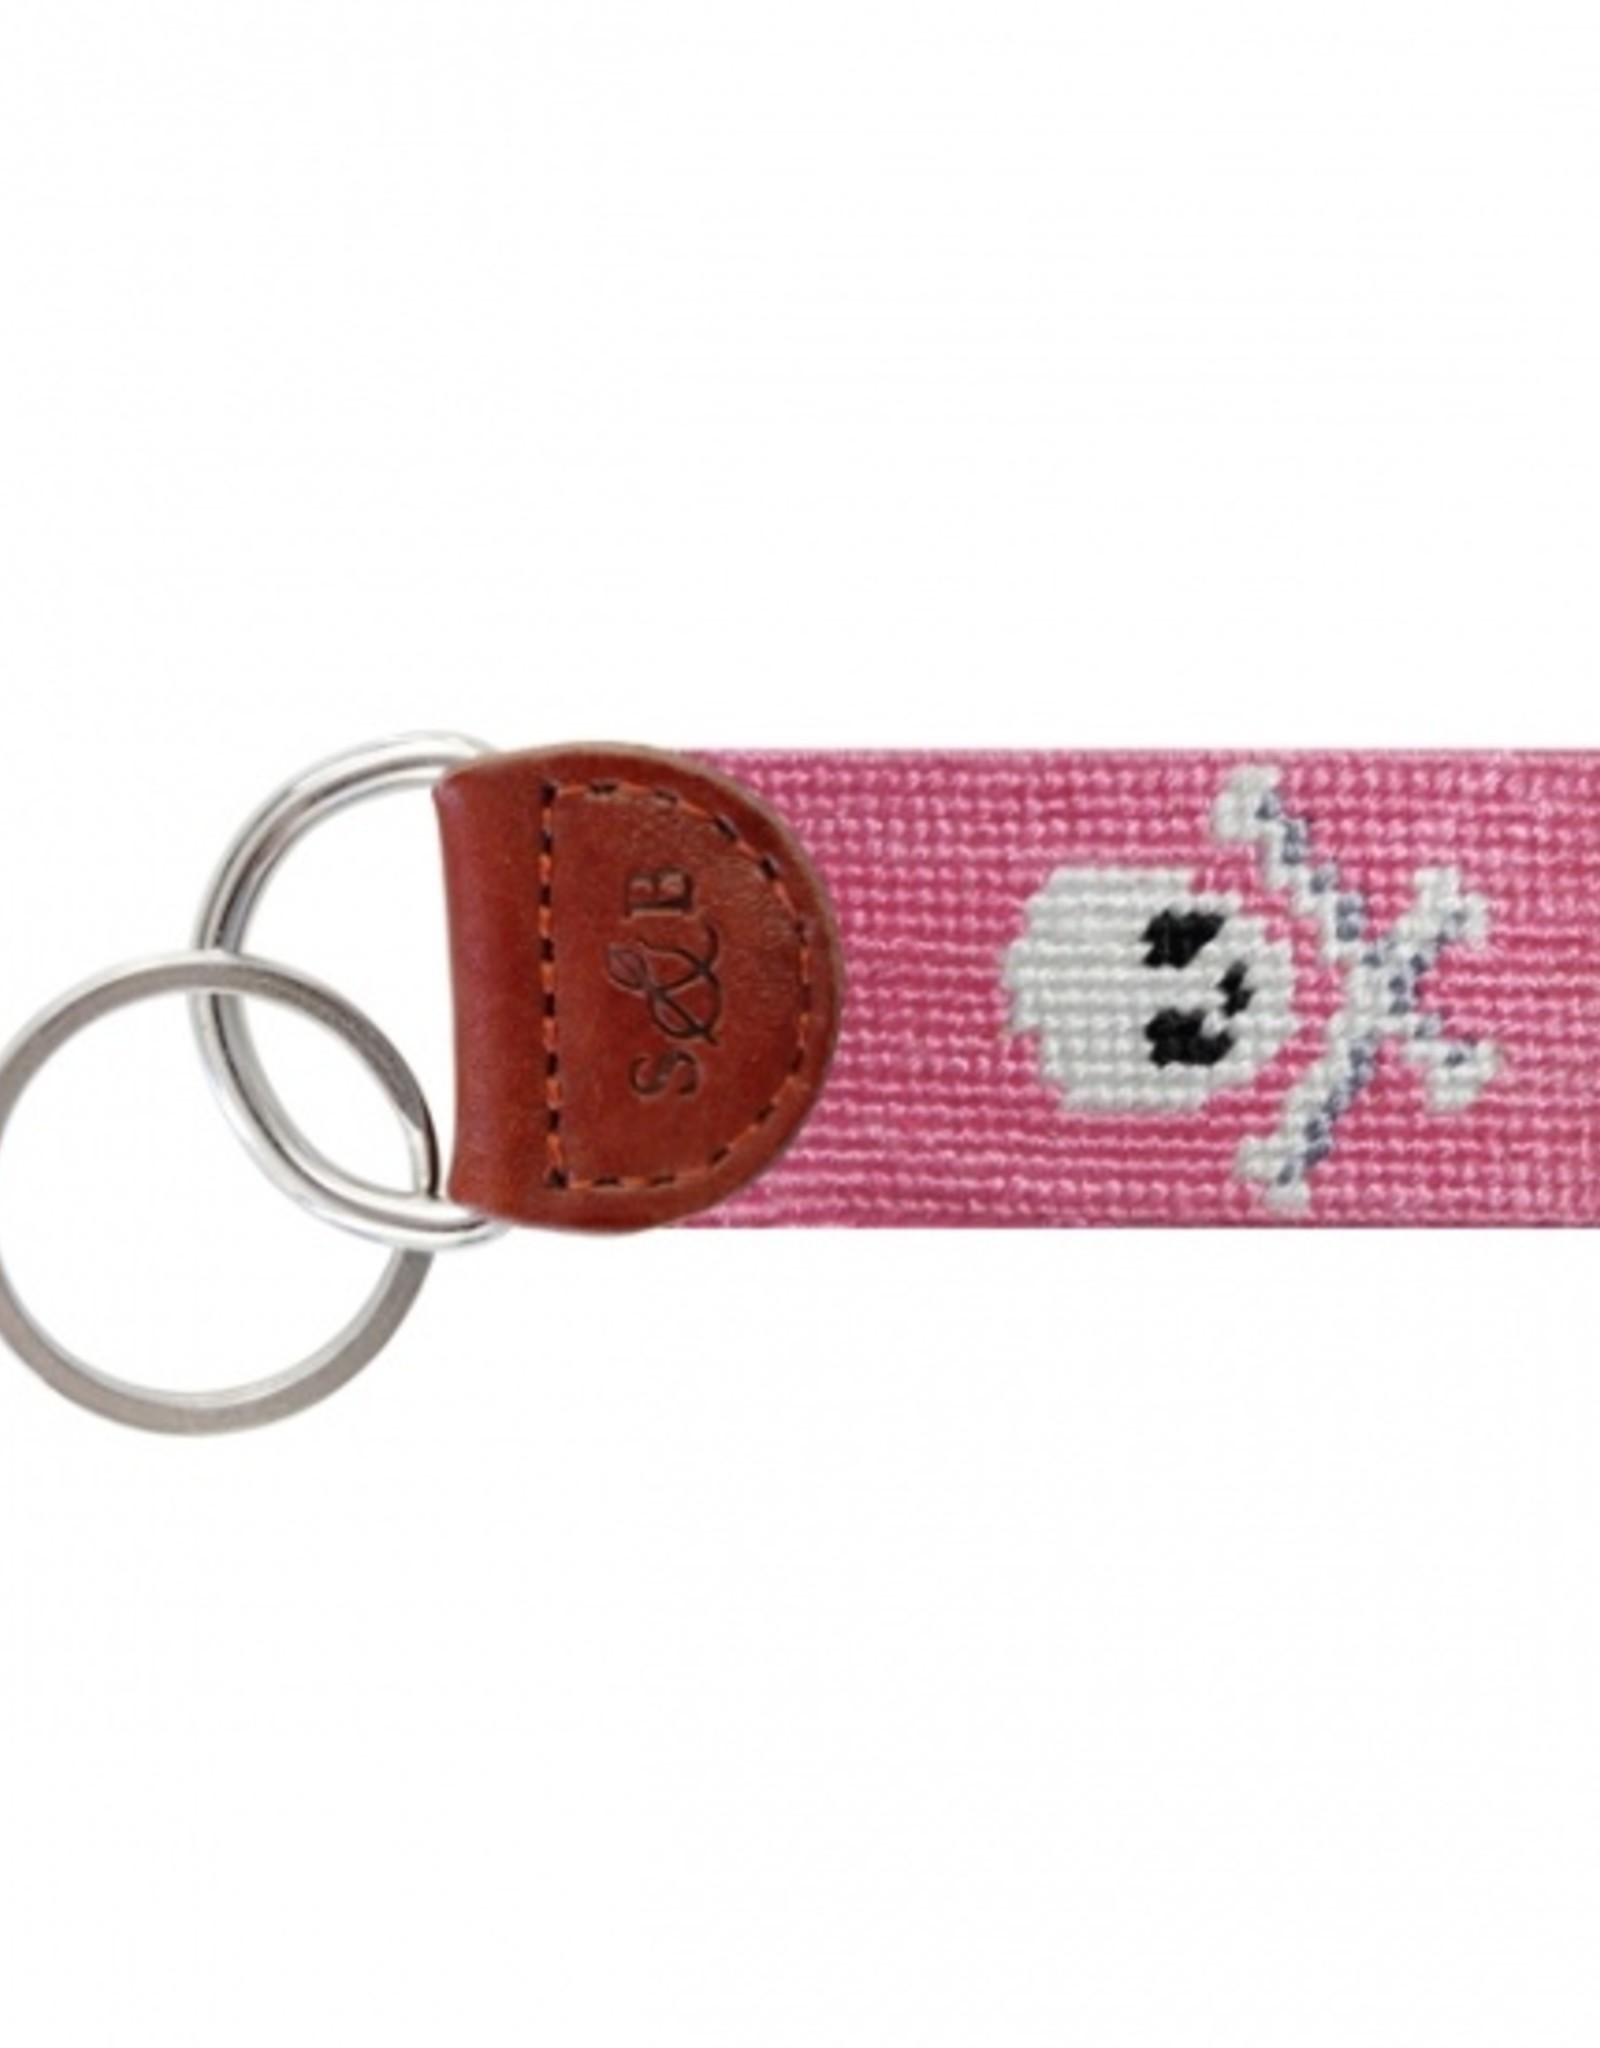 Smathers and Branson Jolly Roger Key Fob